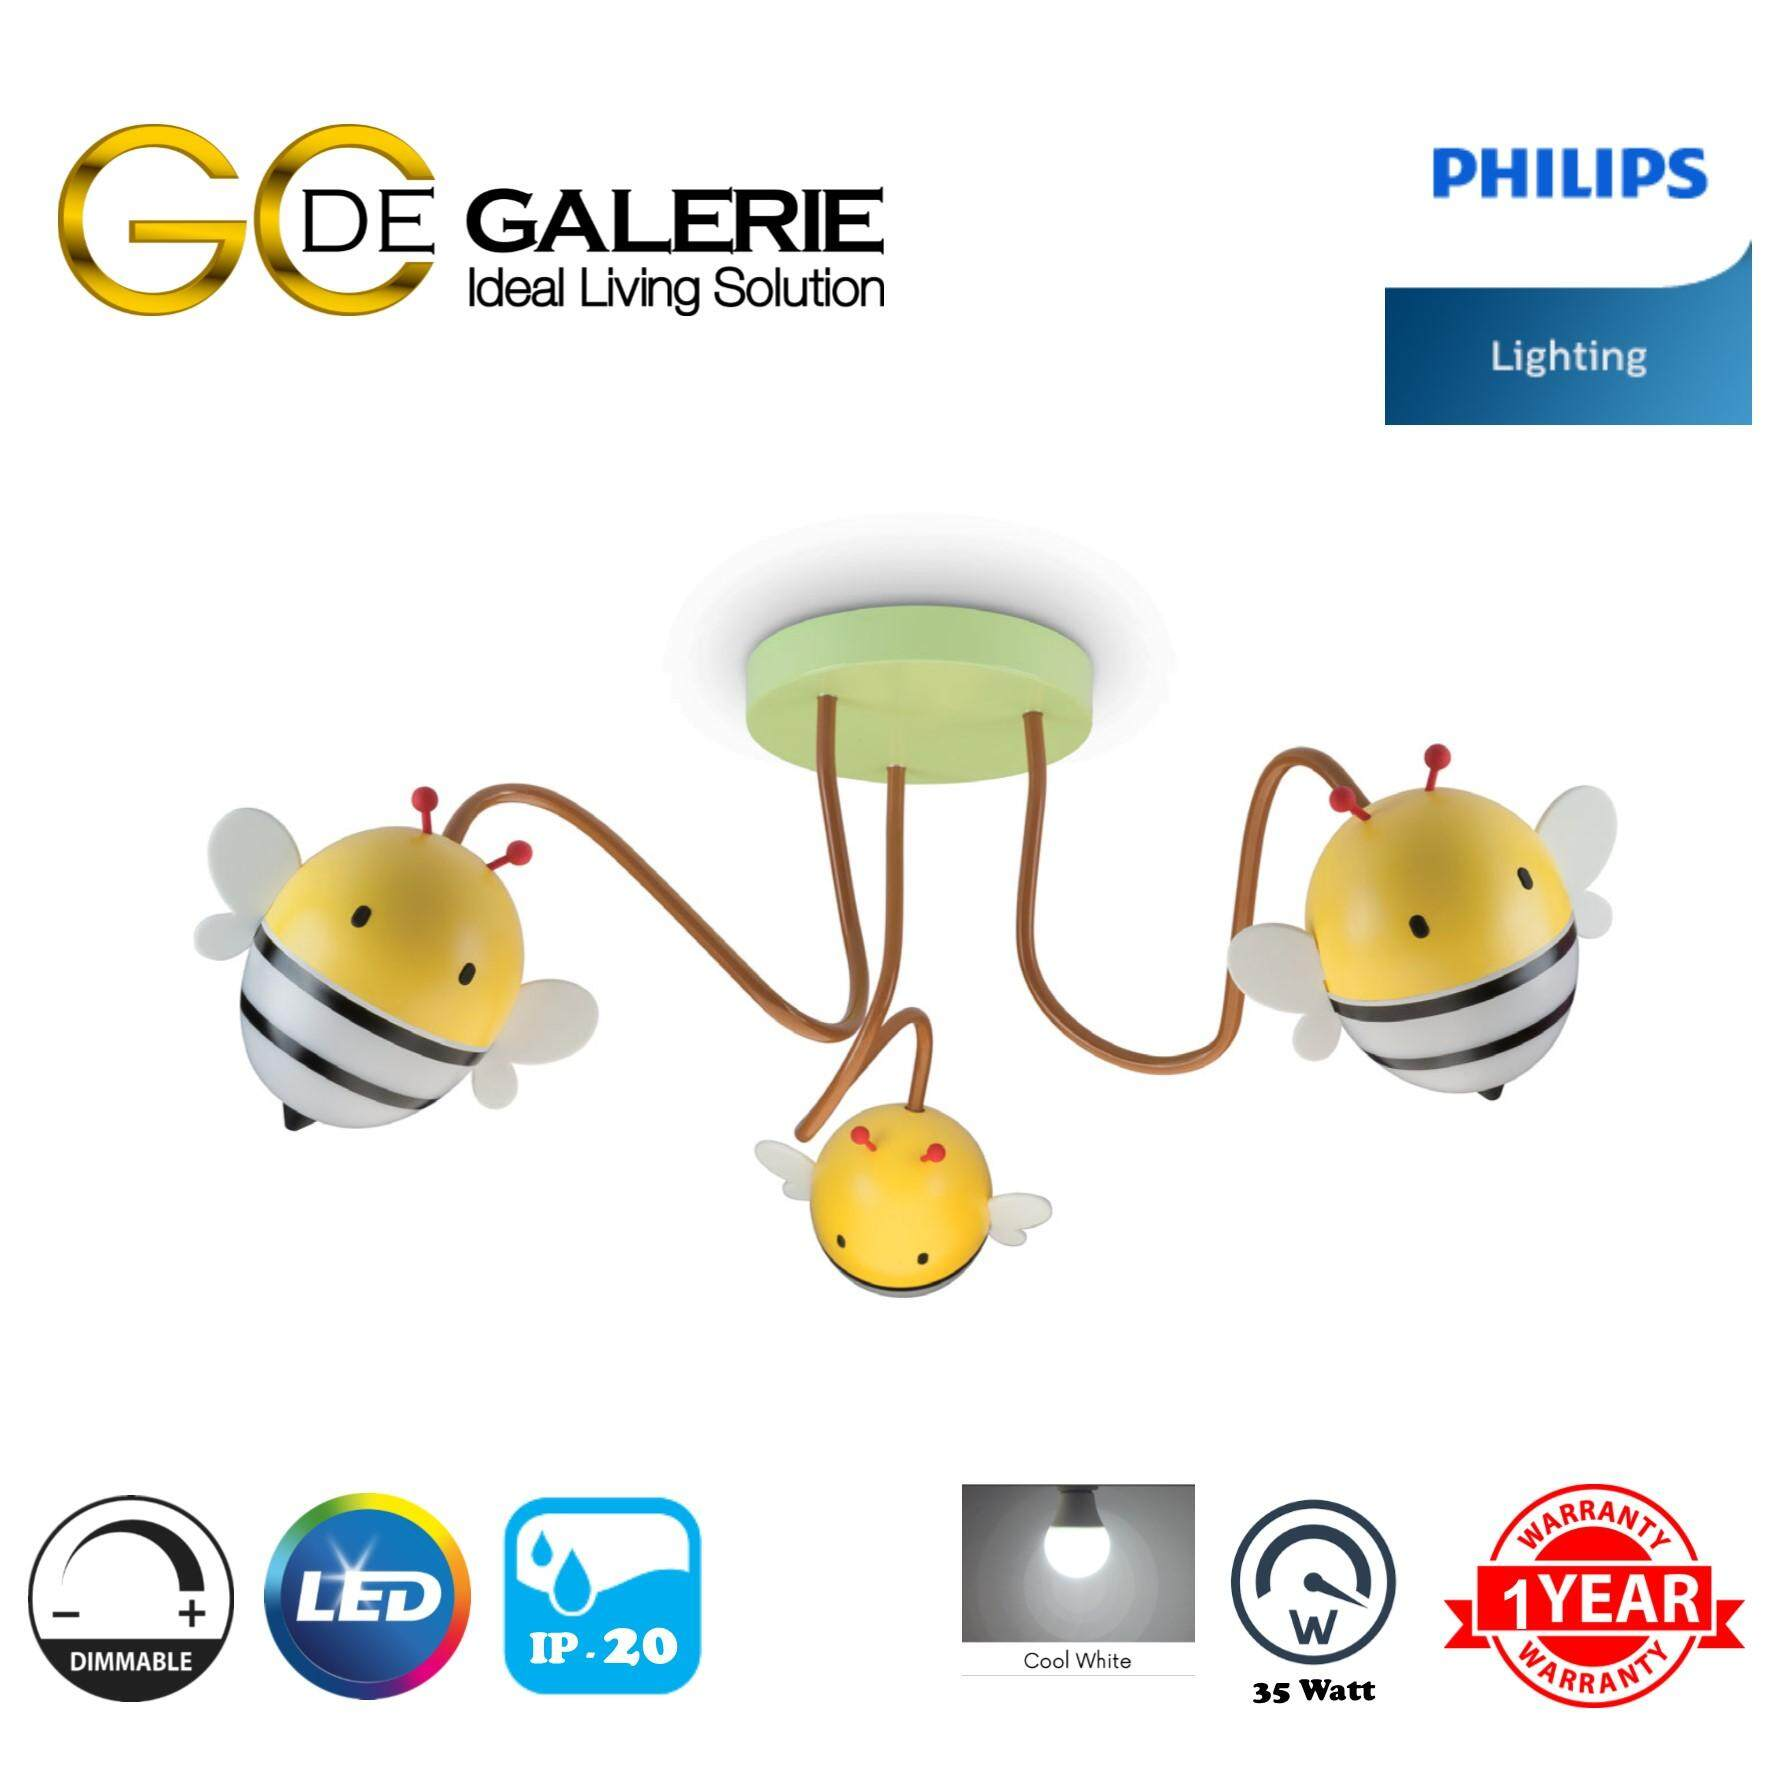 PENDANT LAMP LED PHILIPS KIDS 77506 BEE SEMIFLUSH 21W DIMMABLE